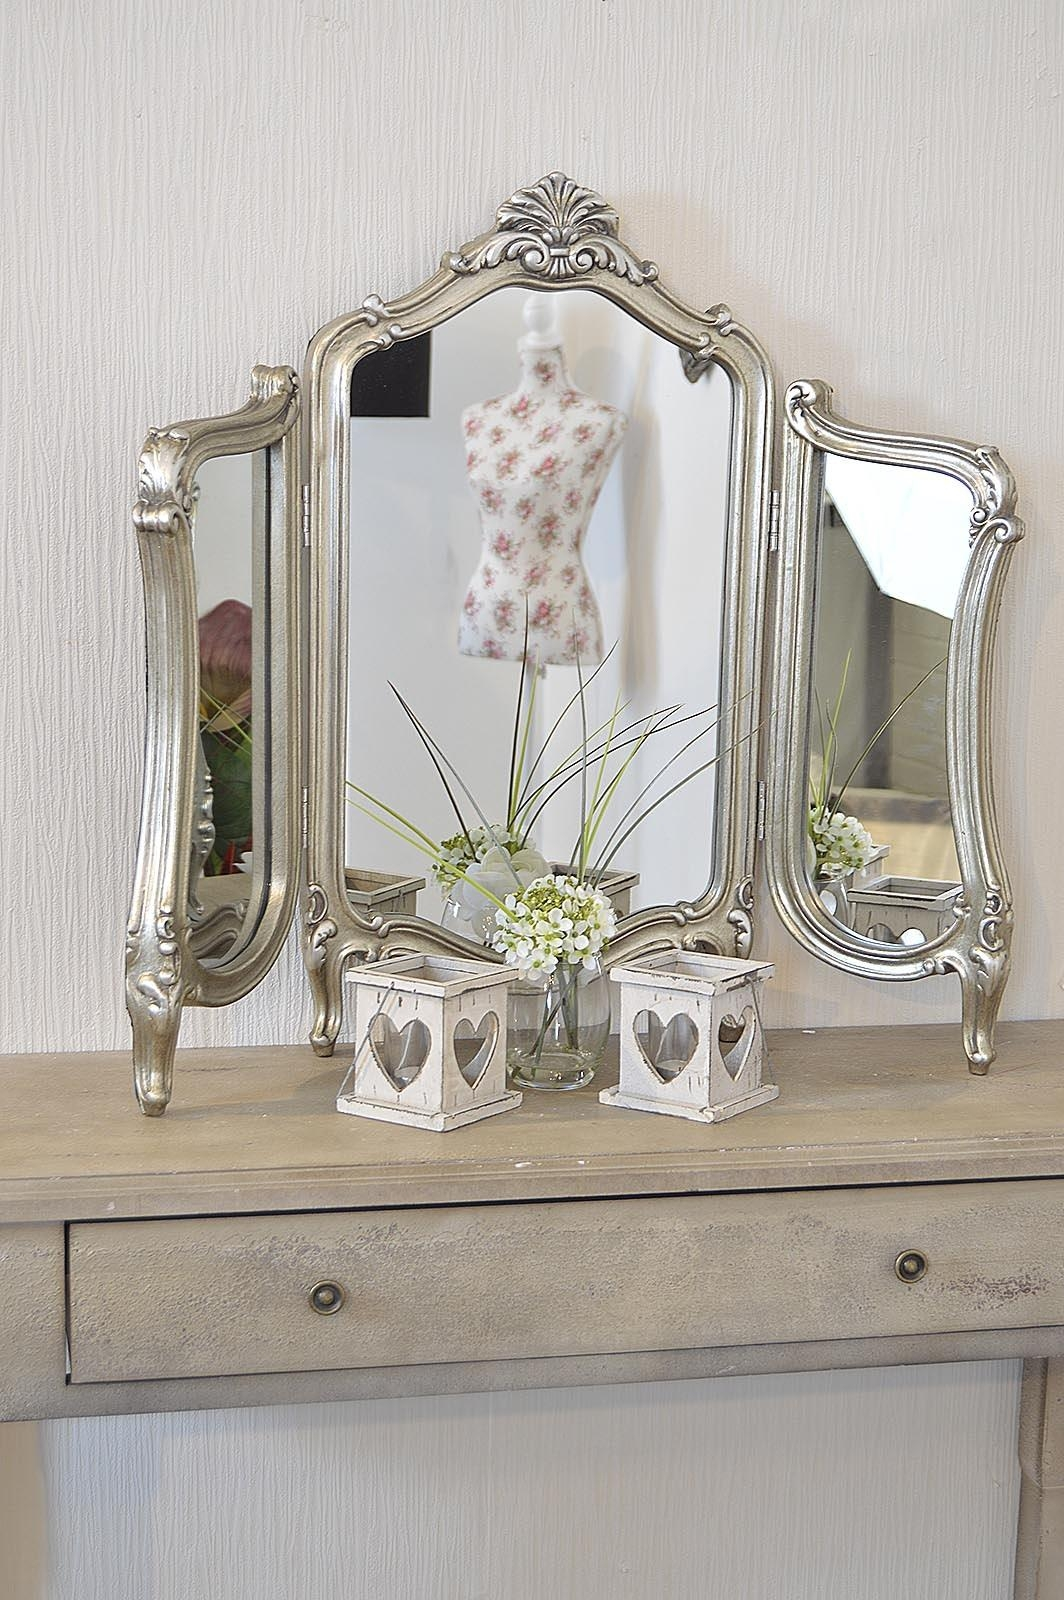 Stunning Antique Design Free Standing Dressing Table Mirror – M315 Intended For Dressing Table Mirrors (View 9 of 20)